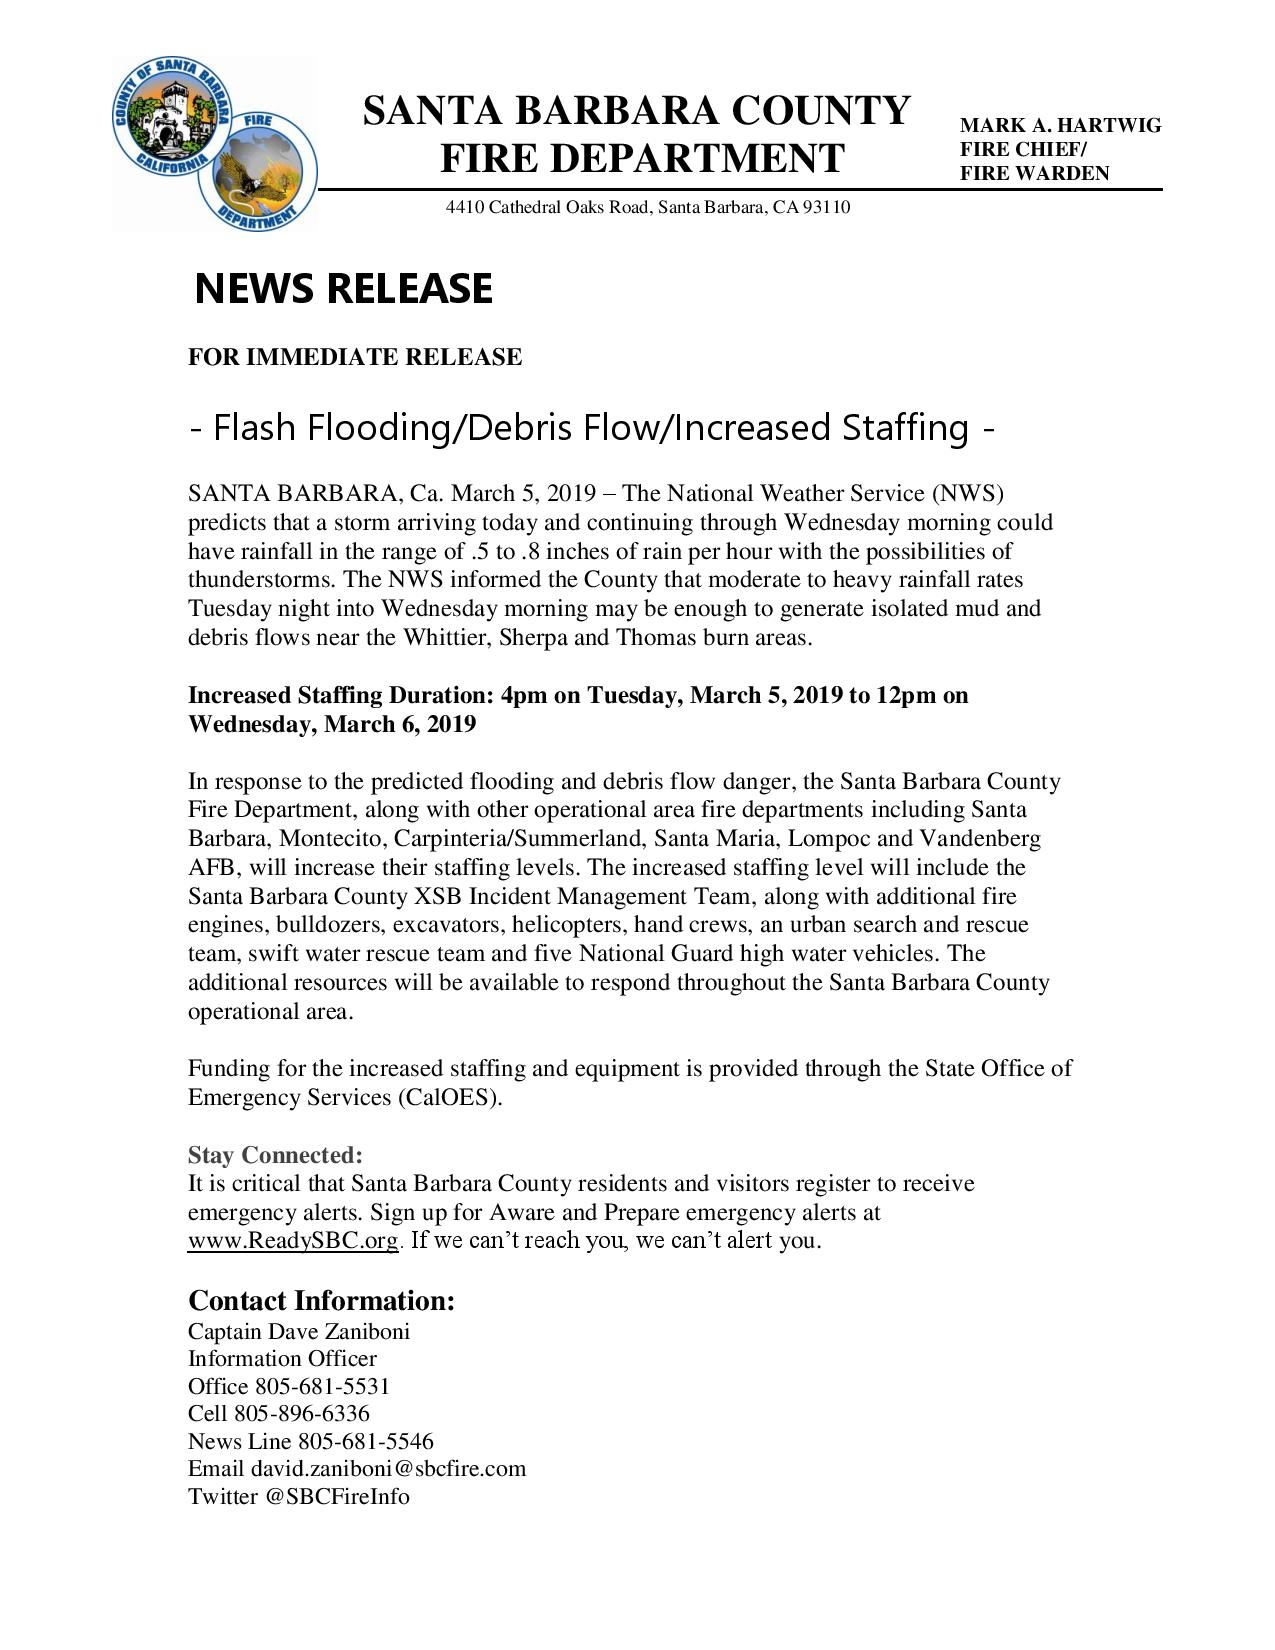 Flash Flooding/Debris Flow/Increased Staffing-pg1